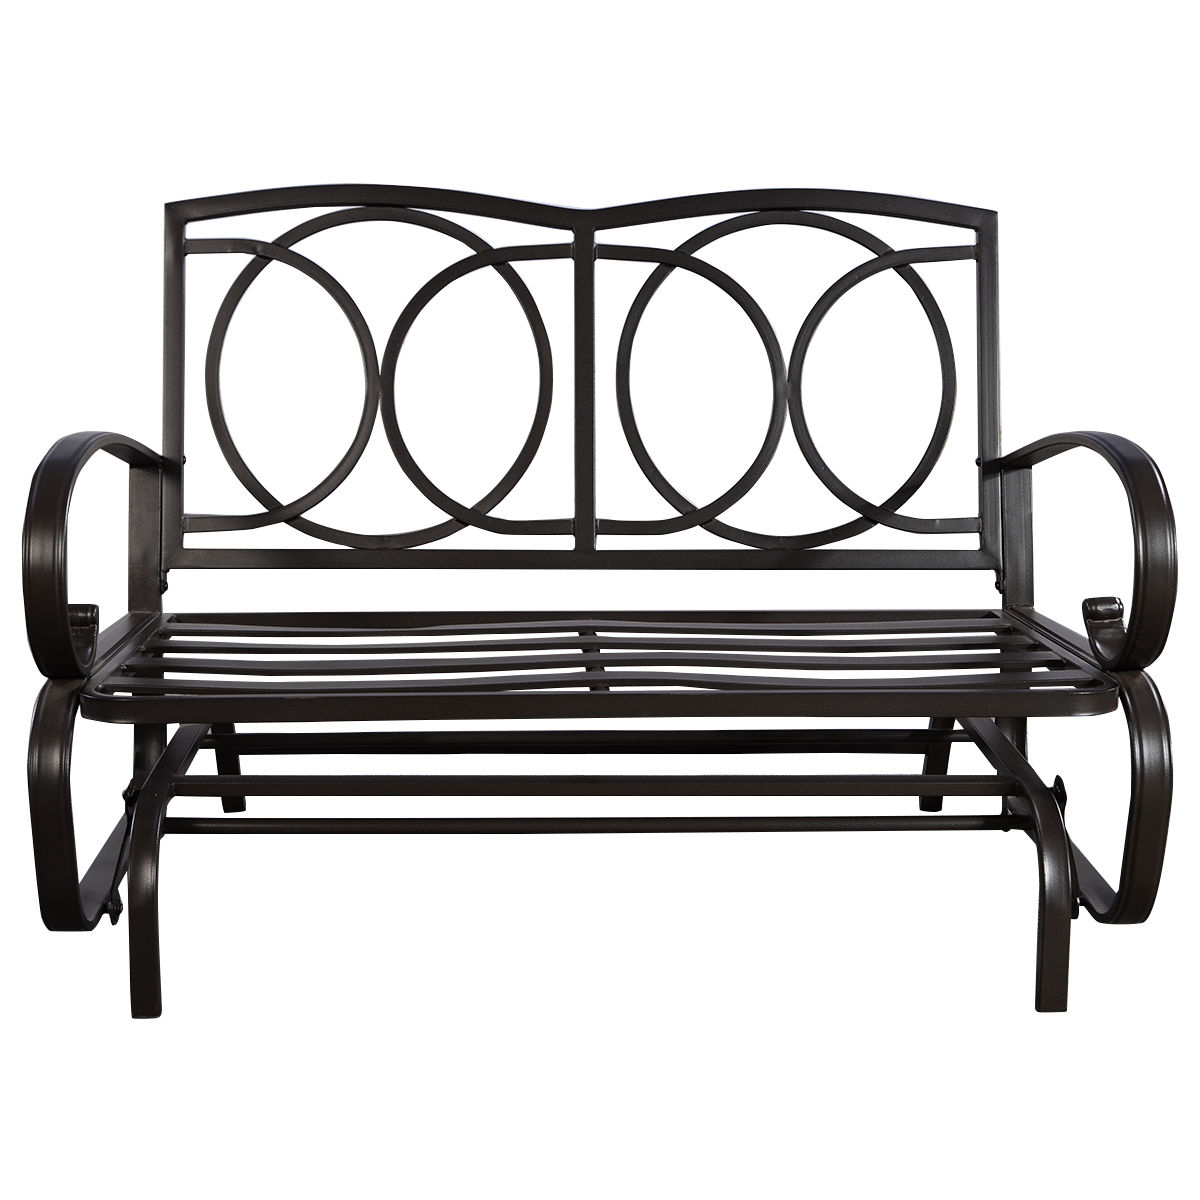 Details About Glider Outdoor Patio Rocking Bench Loveseat Cushioned Seat  Steel Frame Furniture Inside Best And Newest Rocking Love Seats Glider Swing Benches With Sturdy Frame (View 5 of 30)